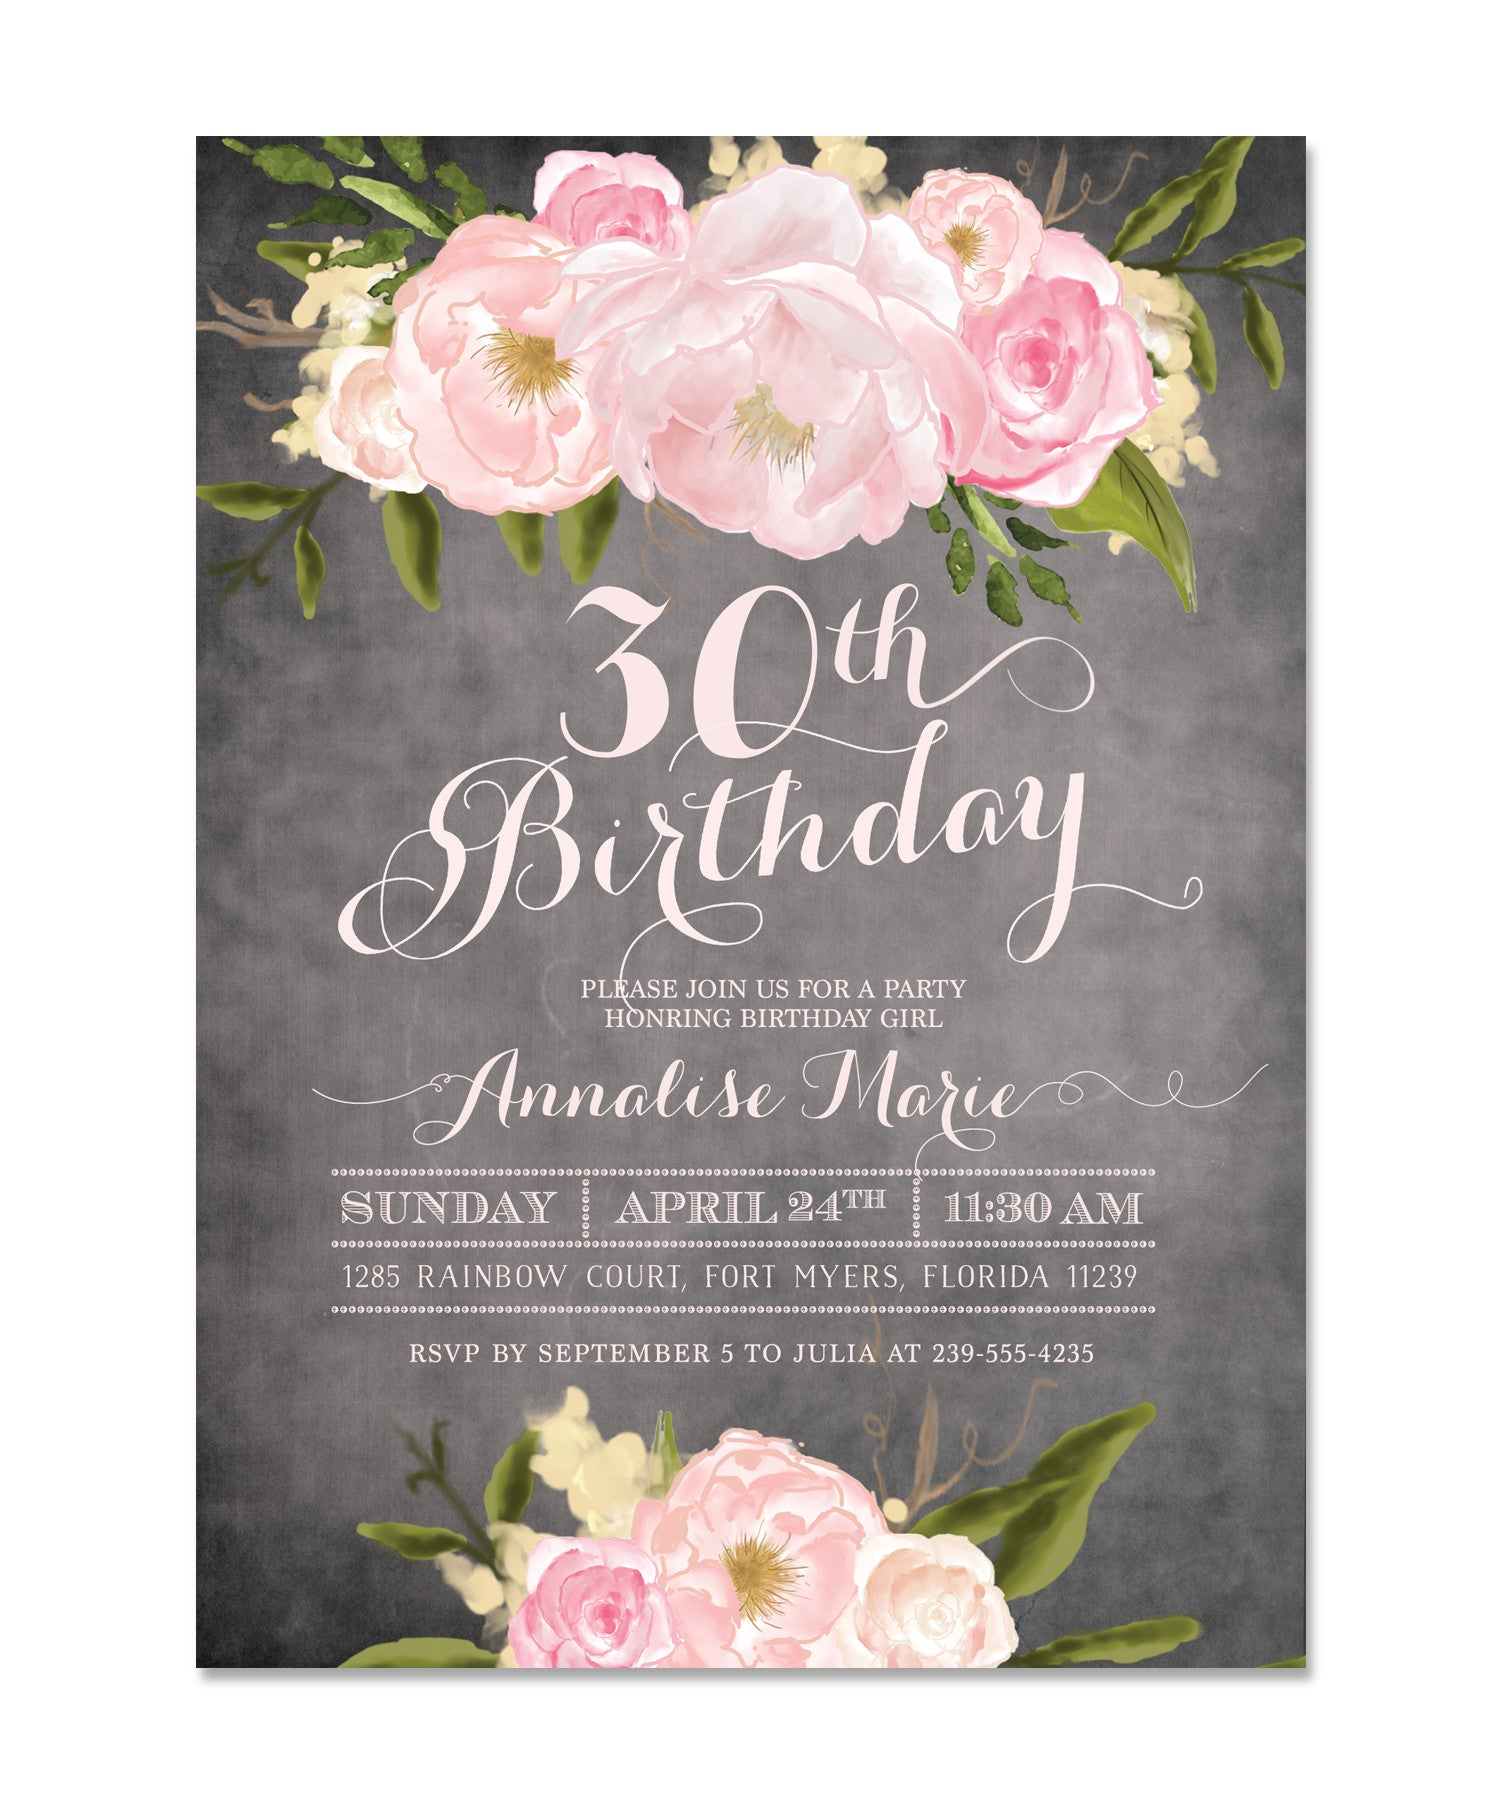 Emily pink peonies roses shabby chic womens milestone birthday emily pink peonies roses shabby chic womens milestone birthday invitation filmwisefo